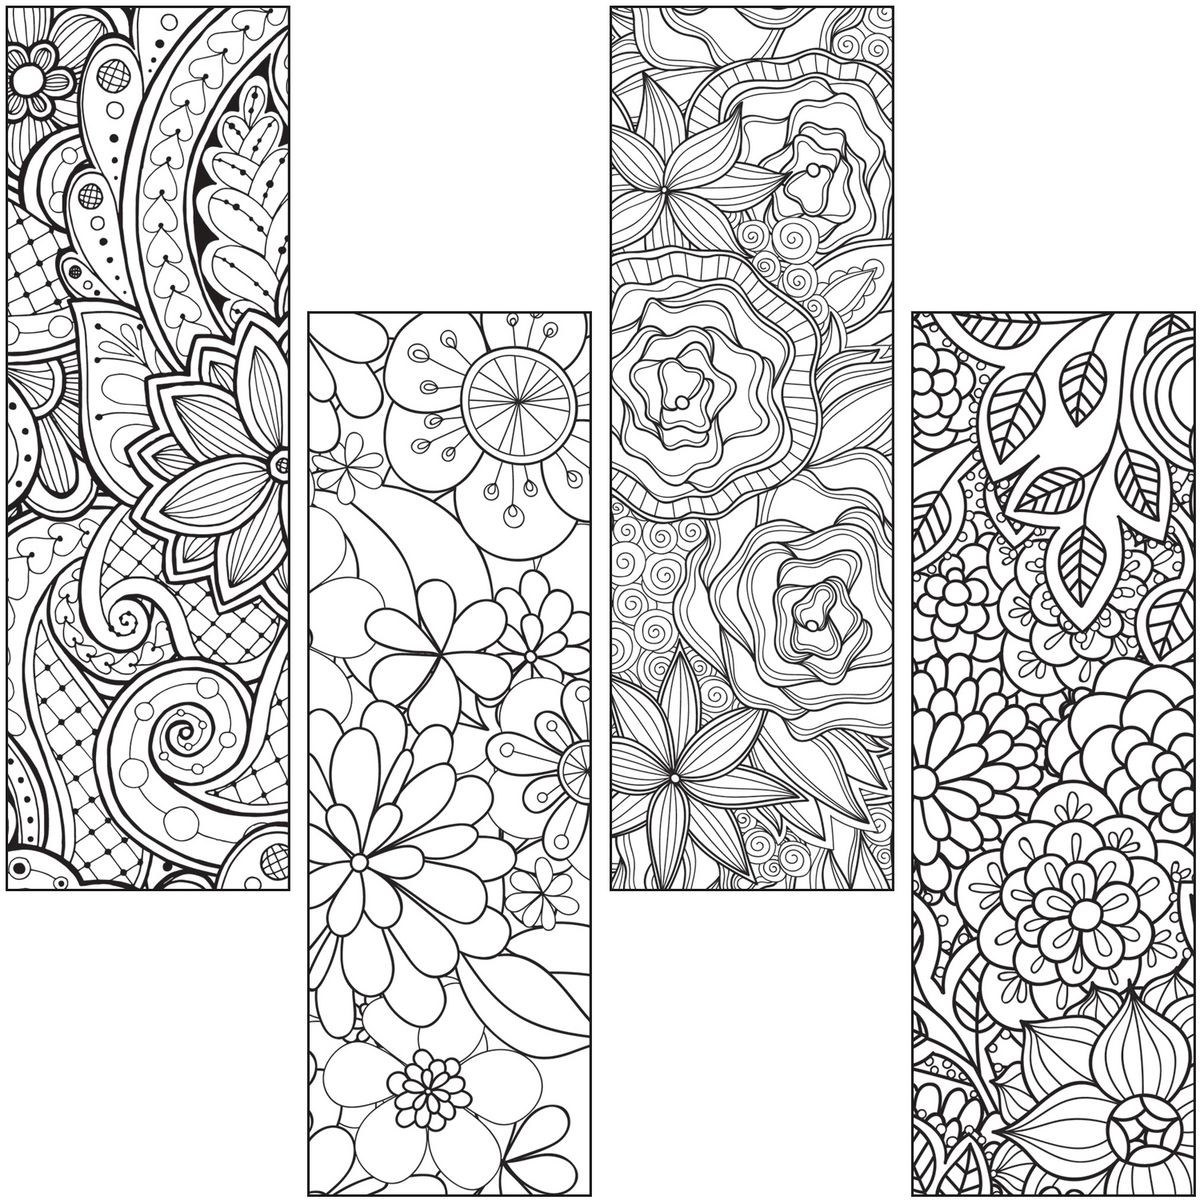 Simplicity image for printable bookmarks to color